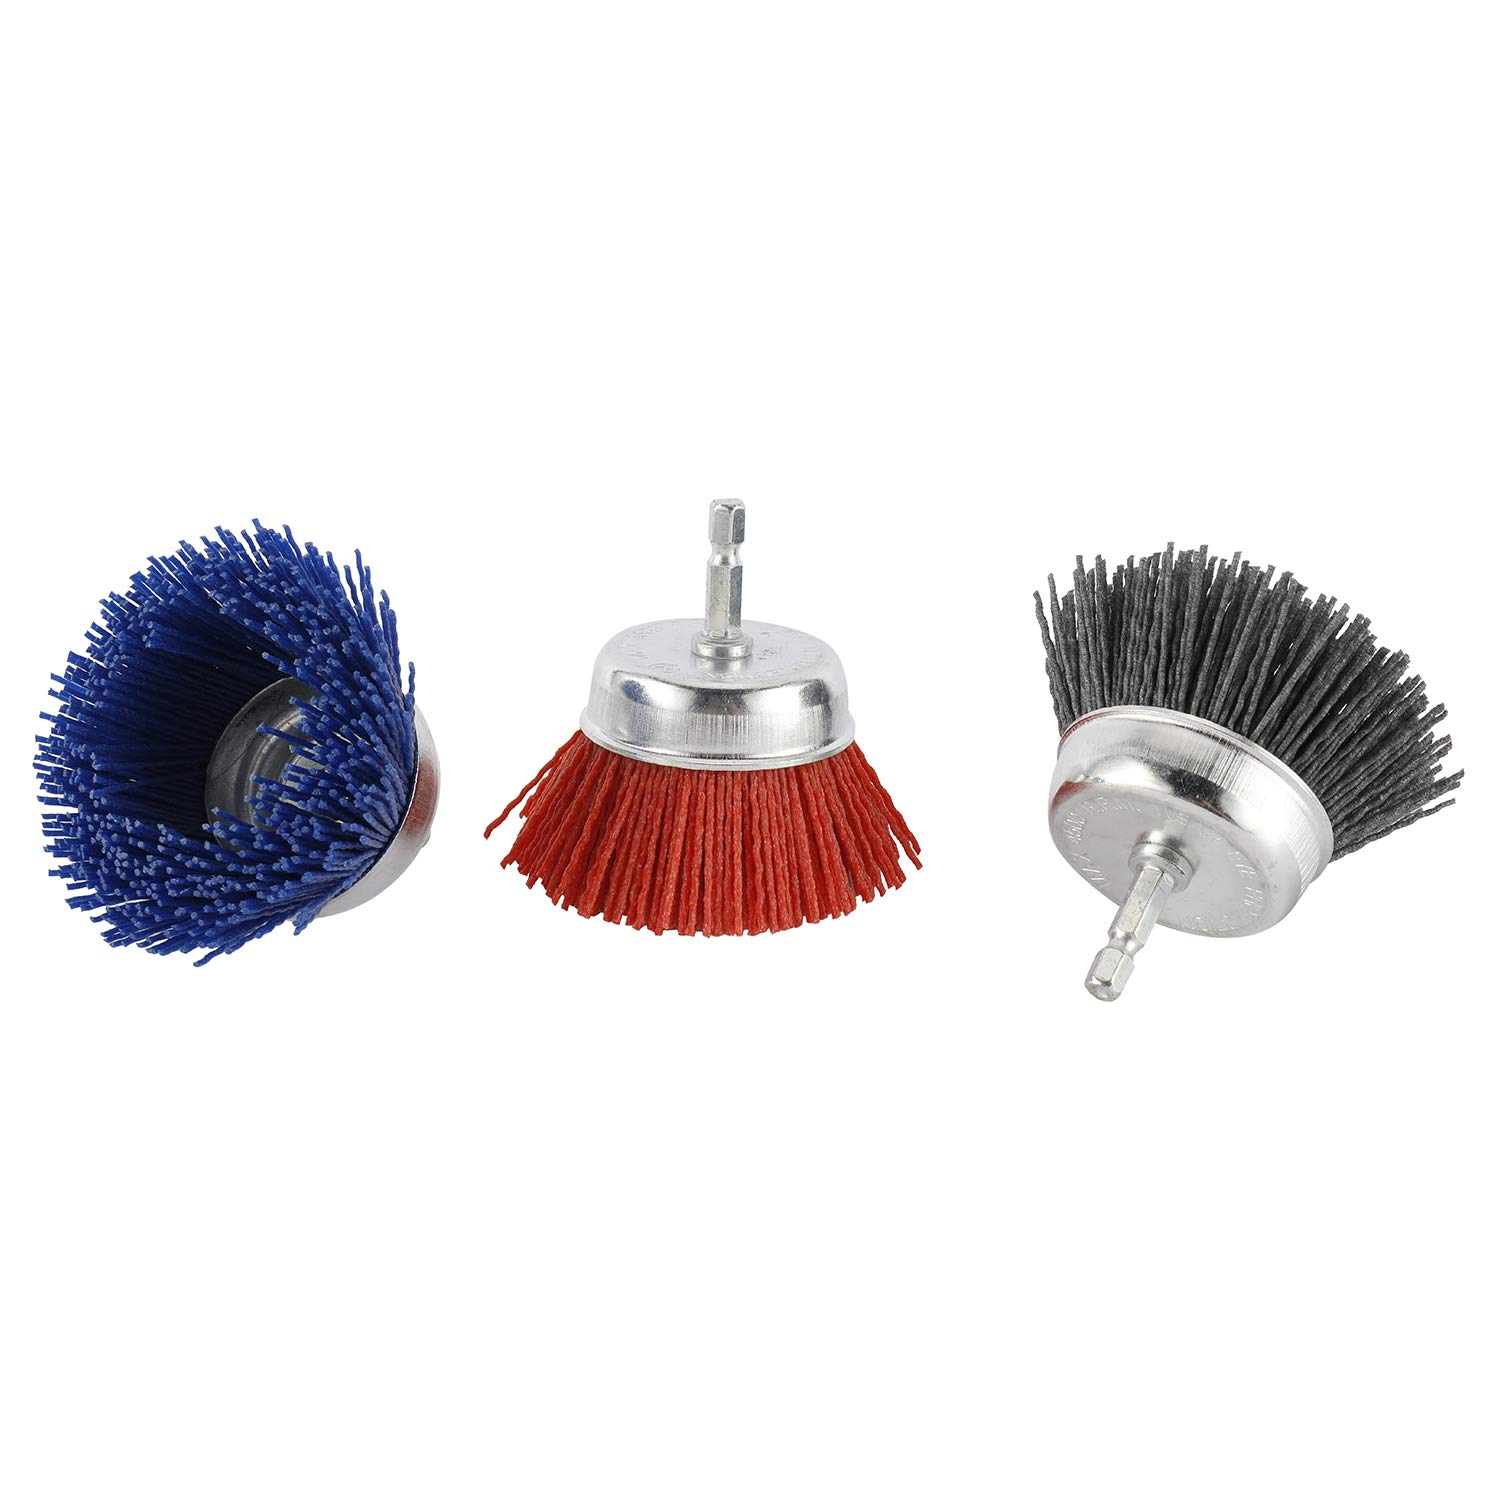 Artilife 3Pcs 3 Assorted Cup Brushes Abrasive Wire Nylon Cup Brush for Most Drill Grit 80# 120# 320# with 1//4 Shank Max 4500 RPM